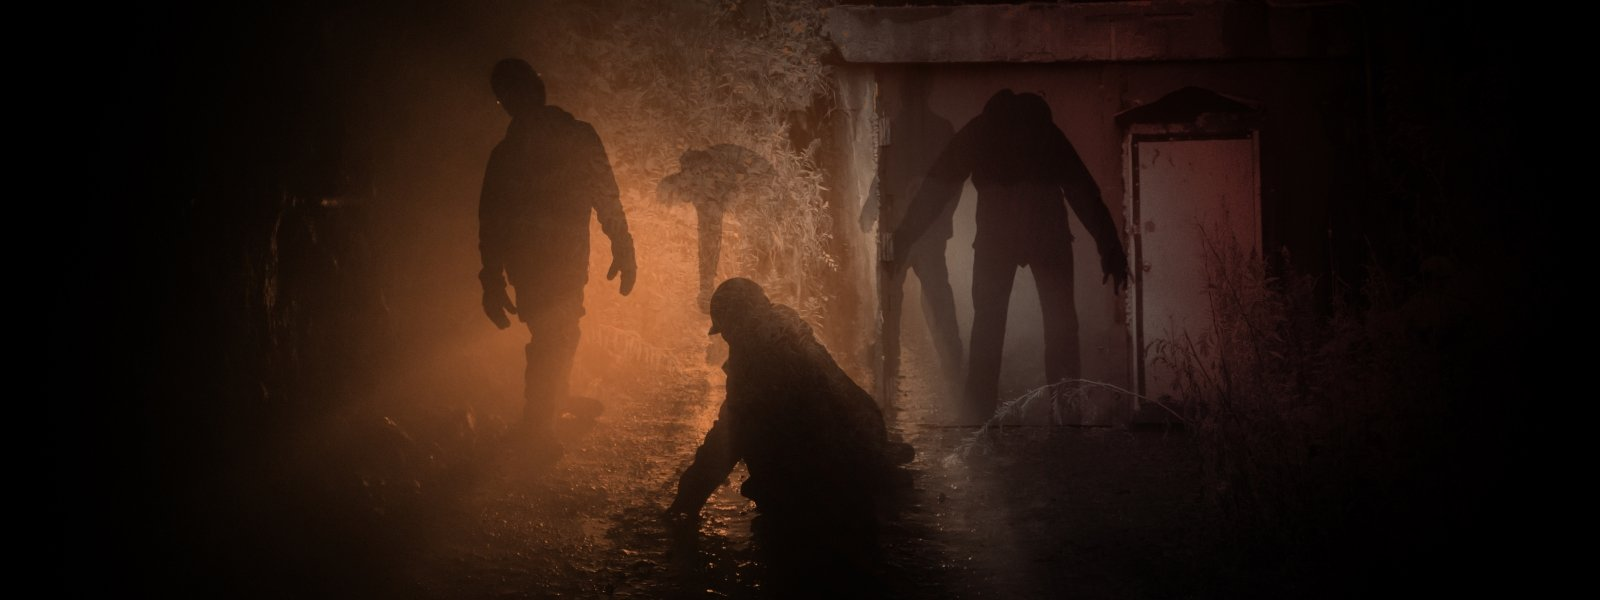 the shadow of zombielike figures wearing hard hats in a hazy red lit dark tunnel underground in a haunted mine.